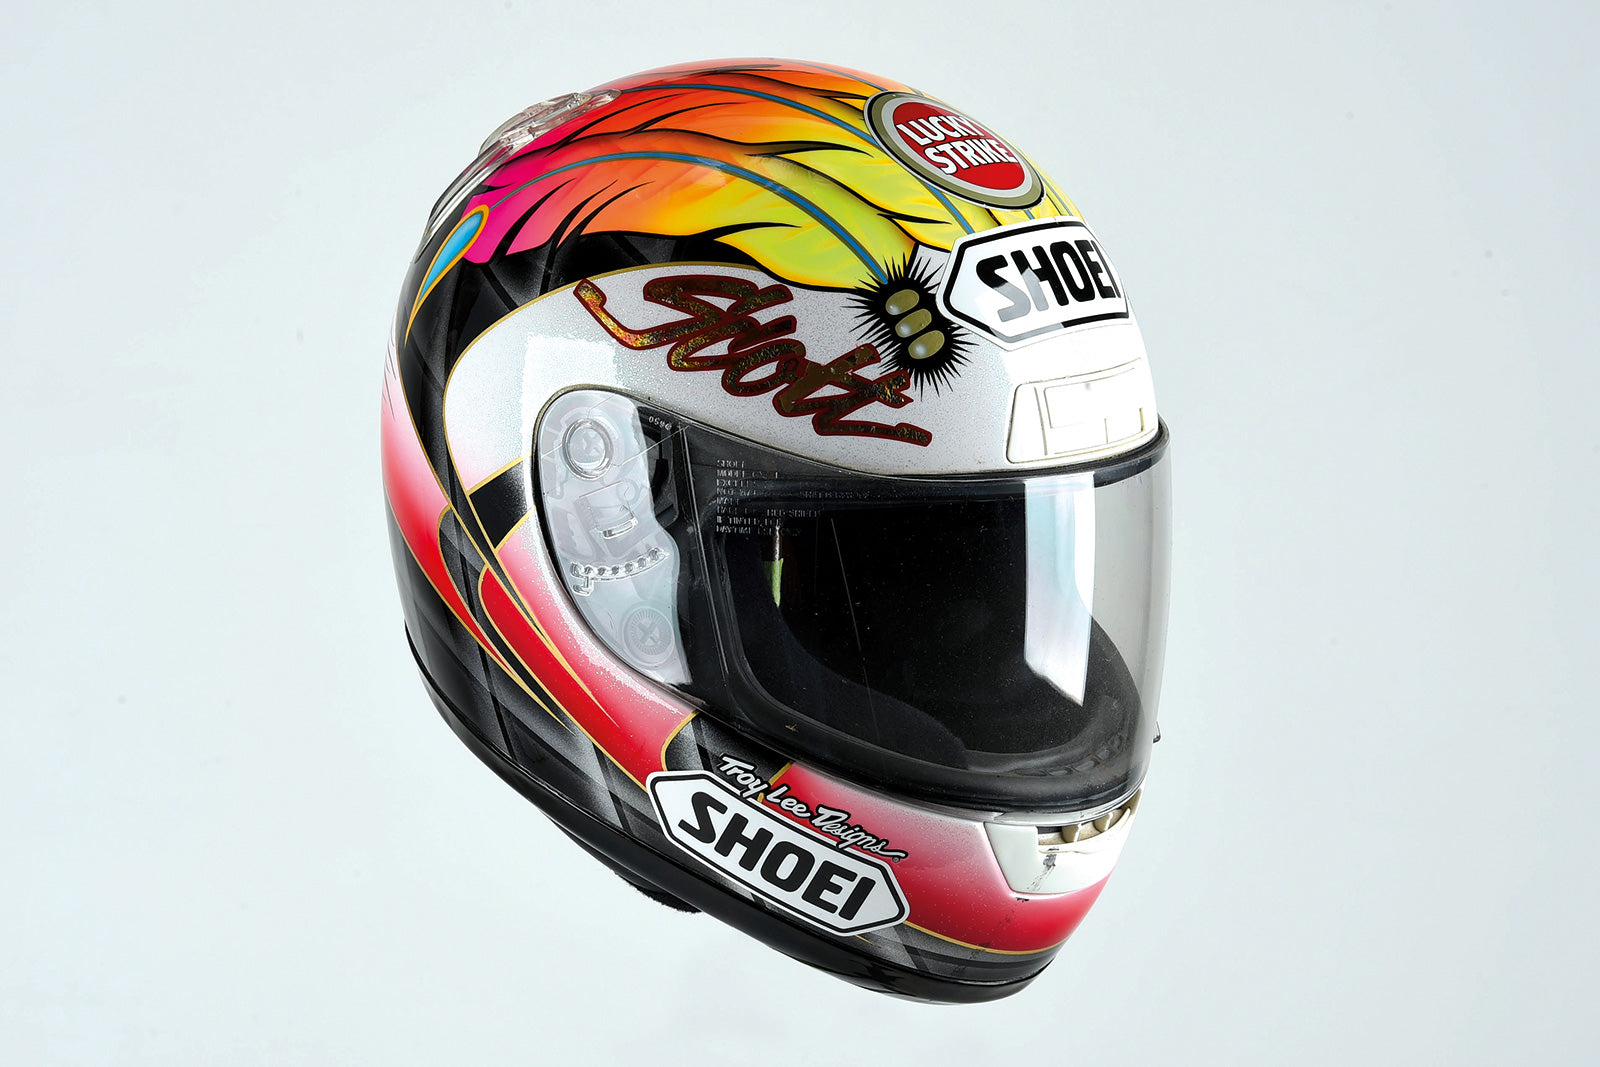 Top5_helmet3a